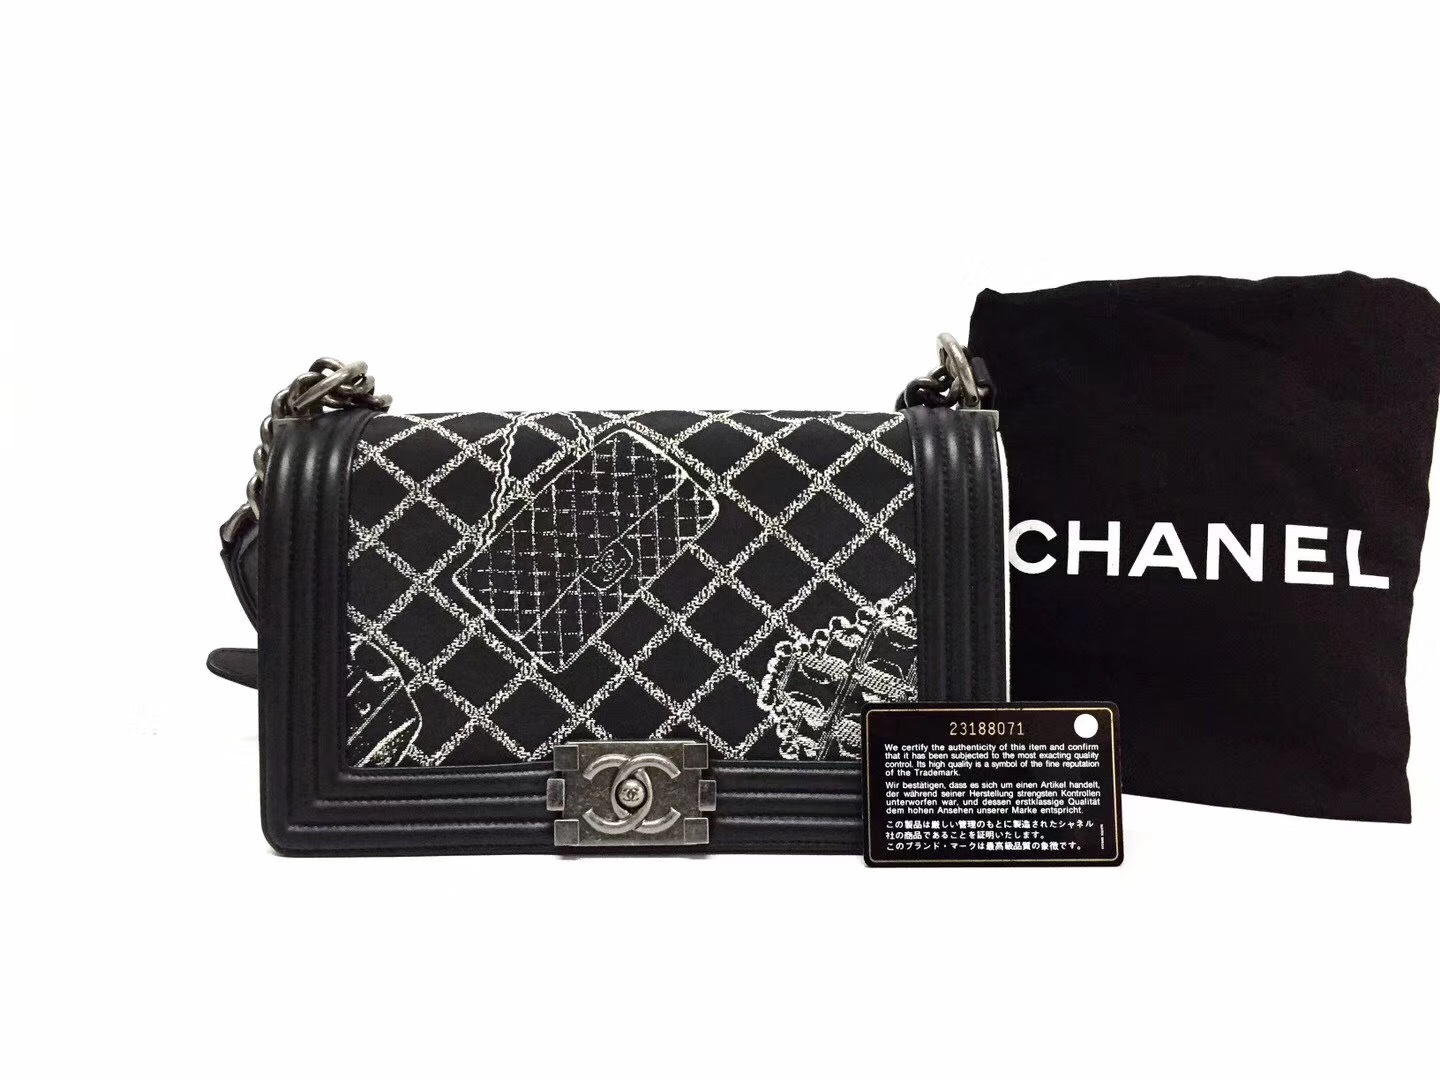 AUTHENTIC CHANEL BLACK Limited Edition RUNWAY EMBROIDERY Medium Boy Flap Bag